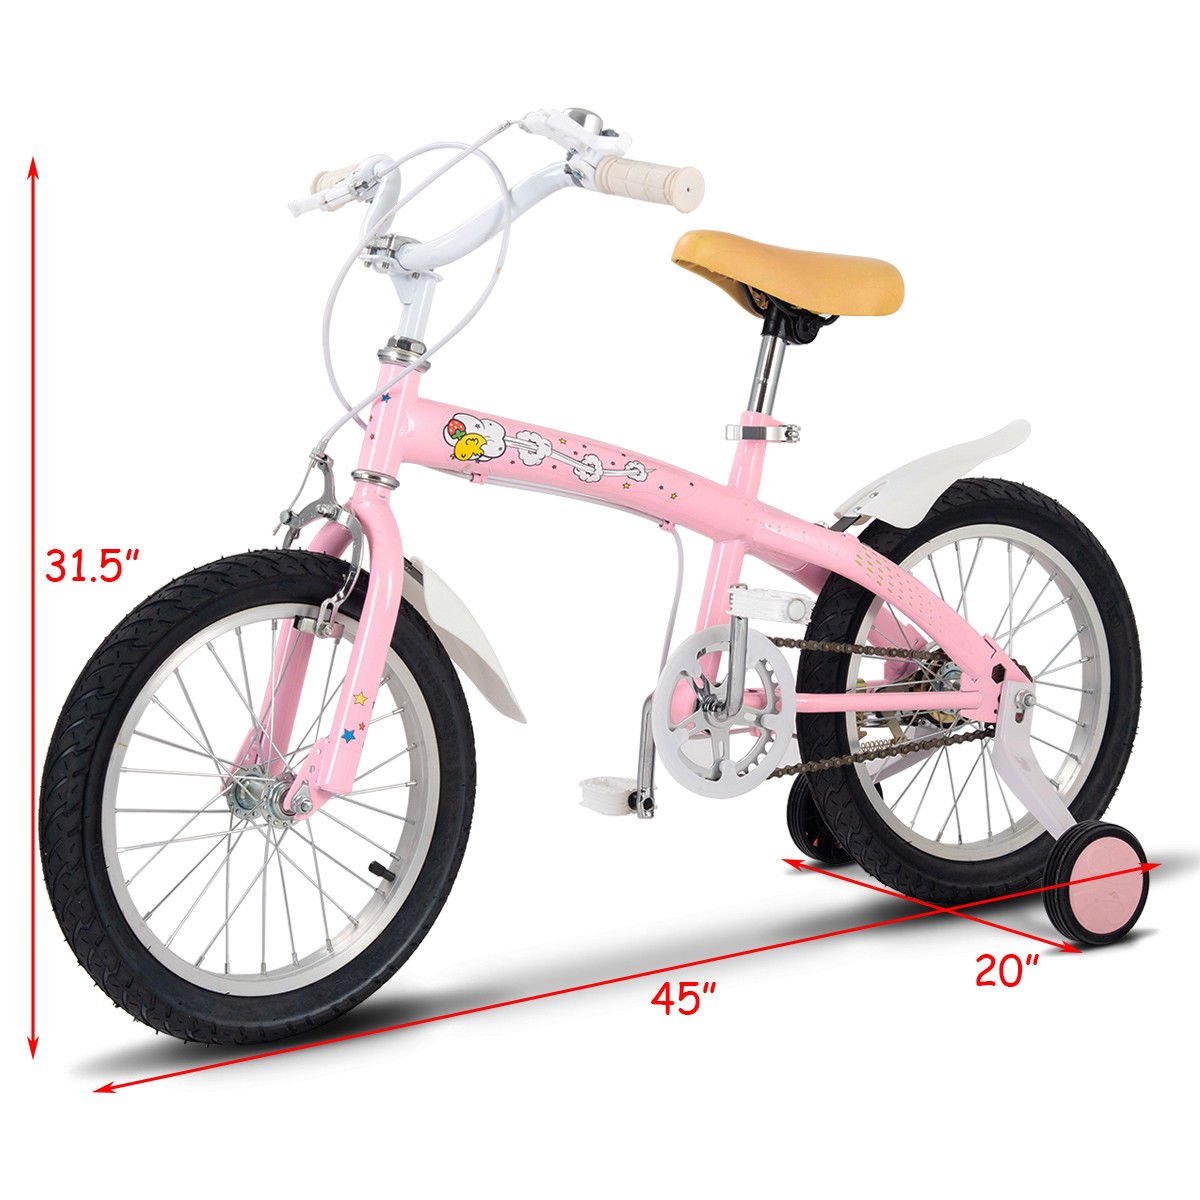 FDInspiration Pink 45'' x 31.5'' Metal Frame Kids Bike w/Training Wheels with Ebook by FDInspiration (Image #5)